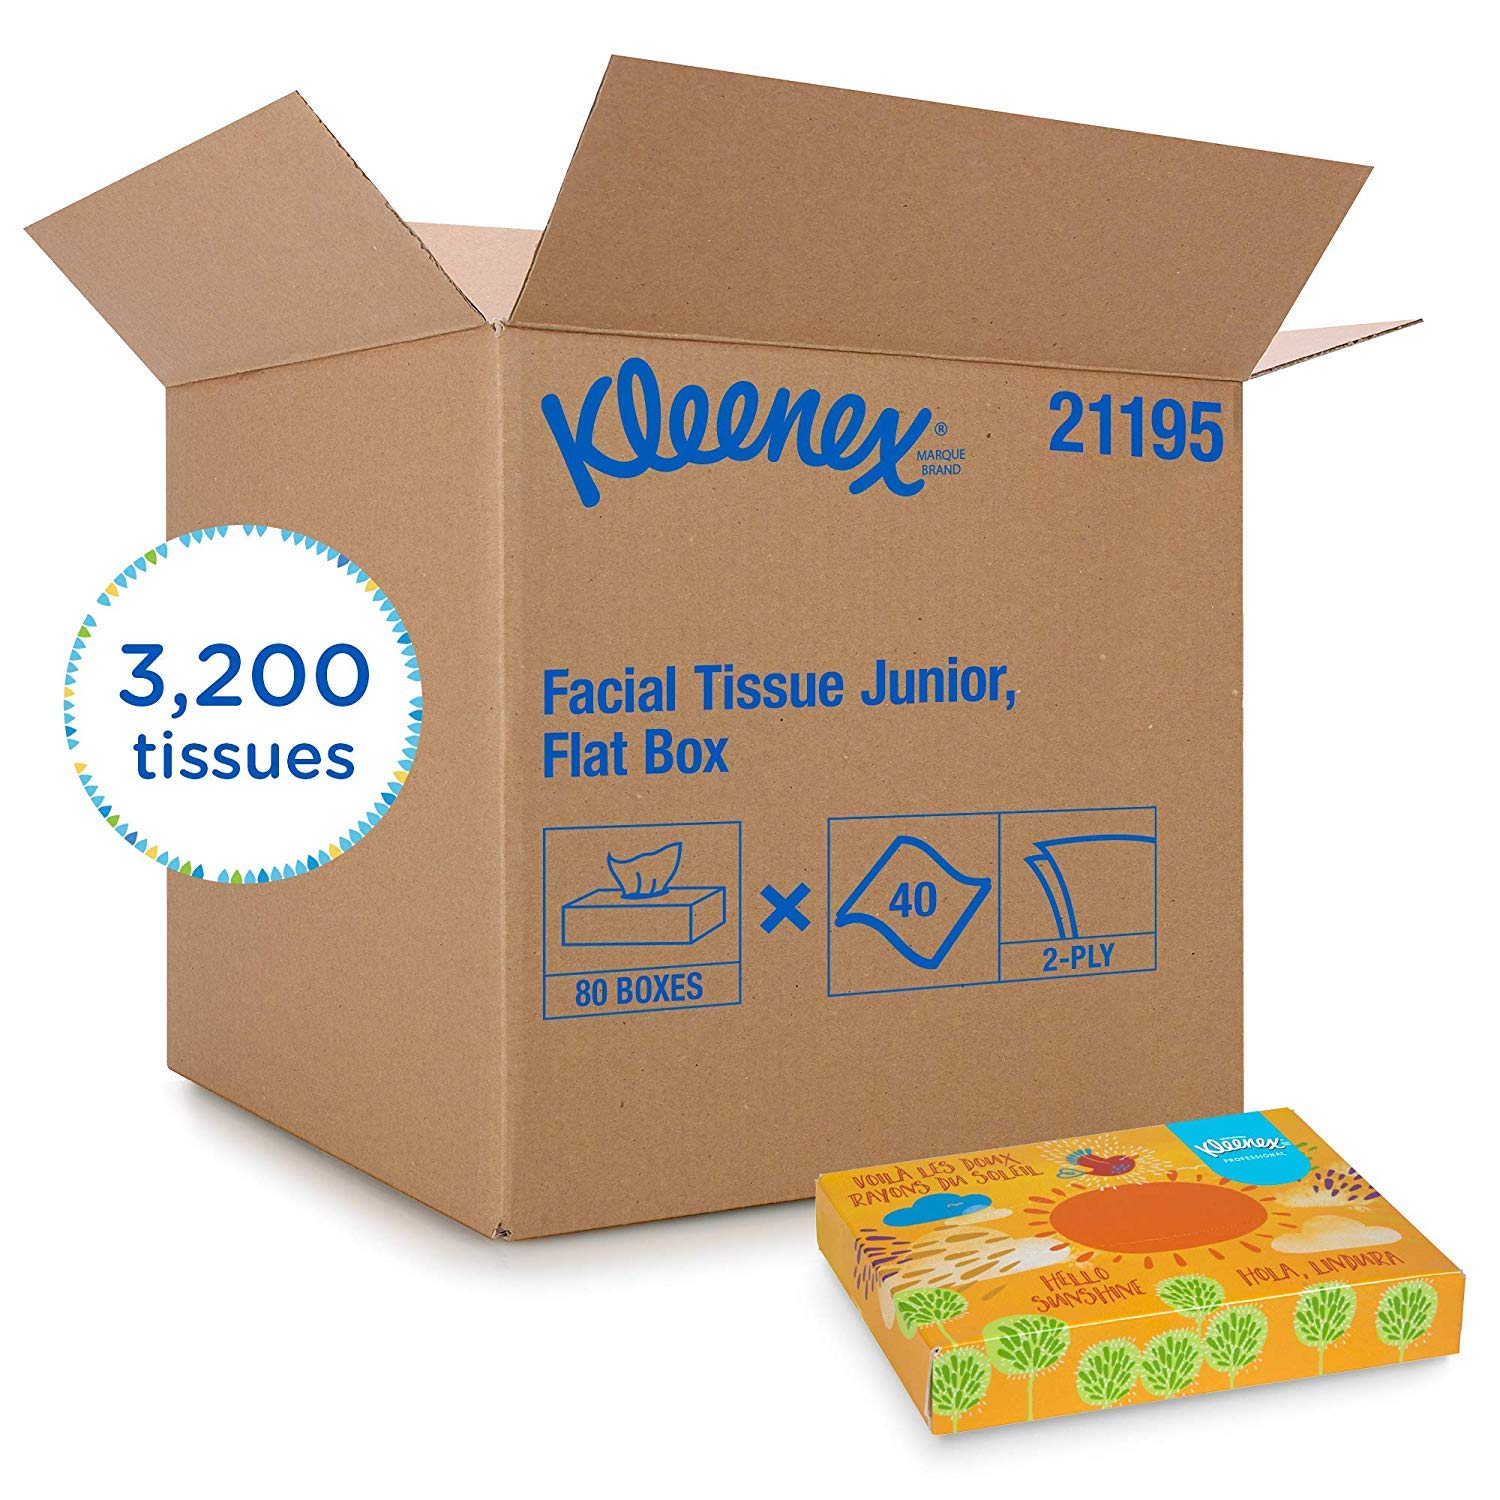 Kleenex Professional Facial Tissue for Business (21195), Flat Tissue Boxes, 80 Junior Boxes/Case, 40 Tissues/Box